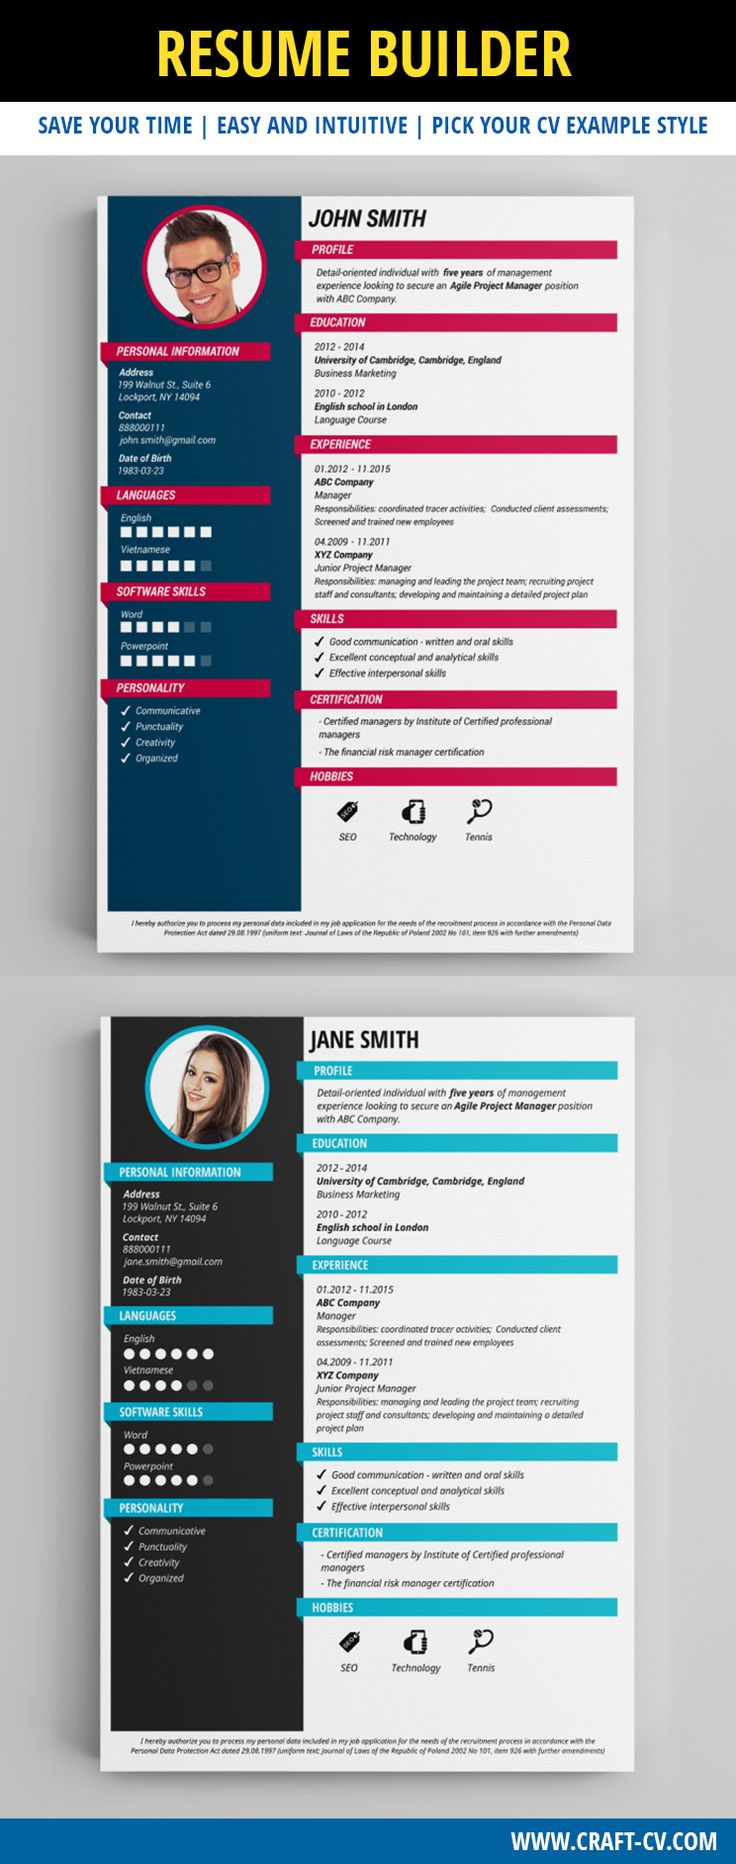 resume builder creative resume templates creativeresume resume cv